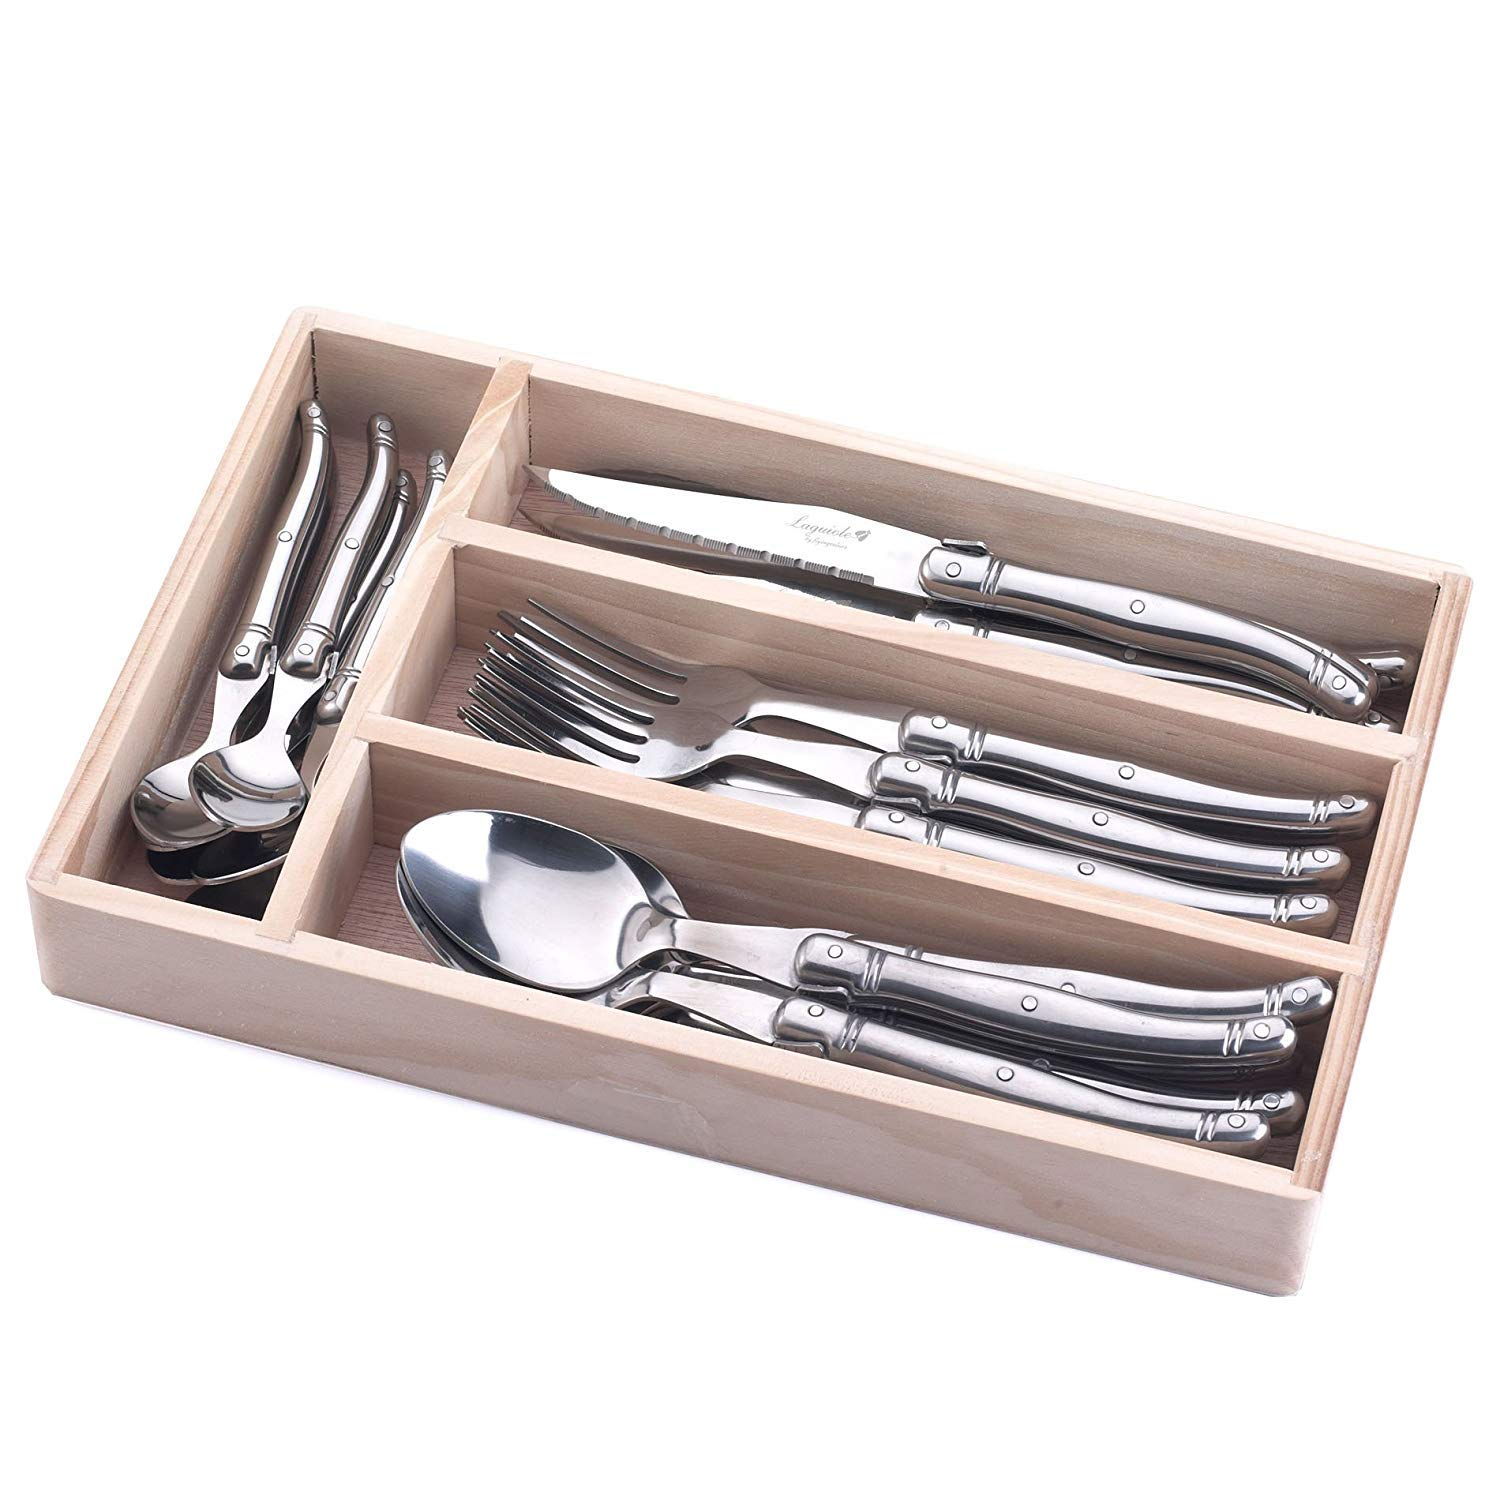 FlyingColors Laguiole Flatware Set. Stainless Steel, Wooden Storage Box, 24 Pieces TLTW-E1008B